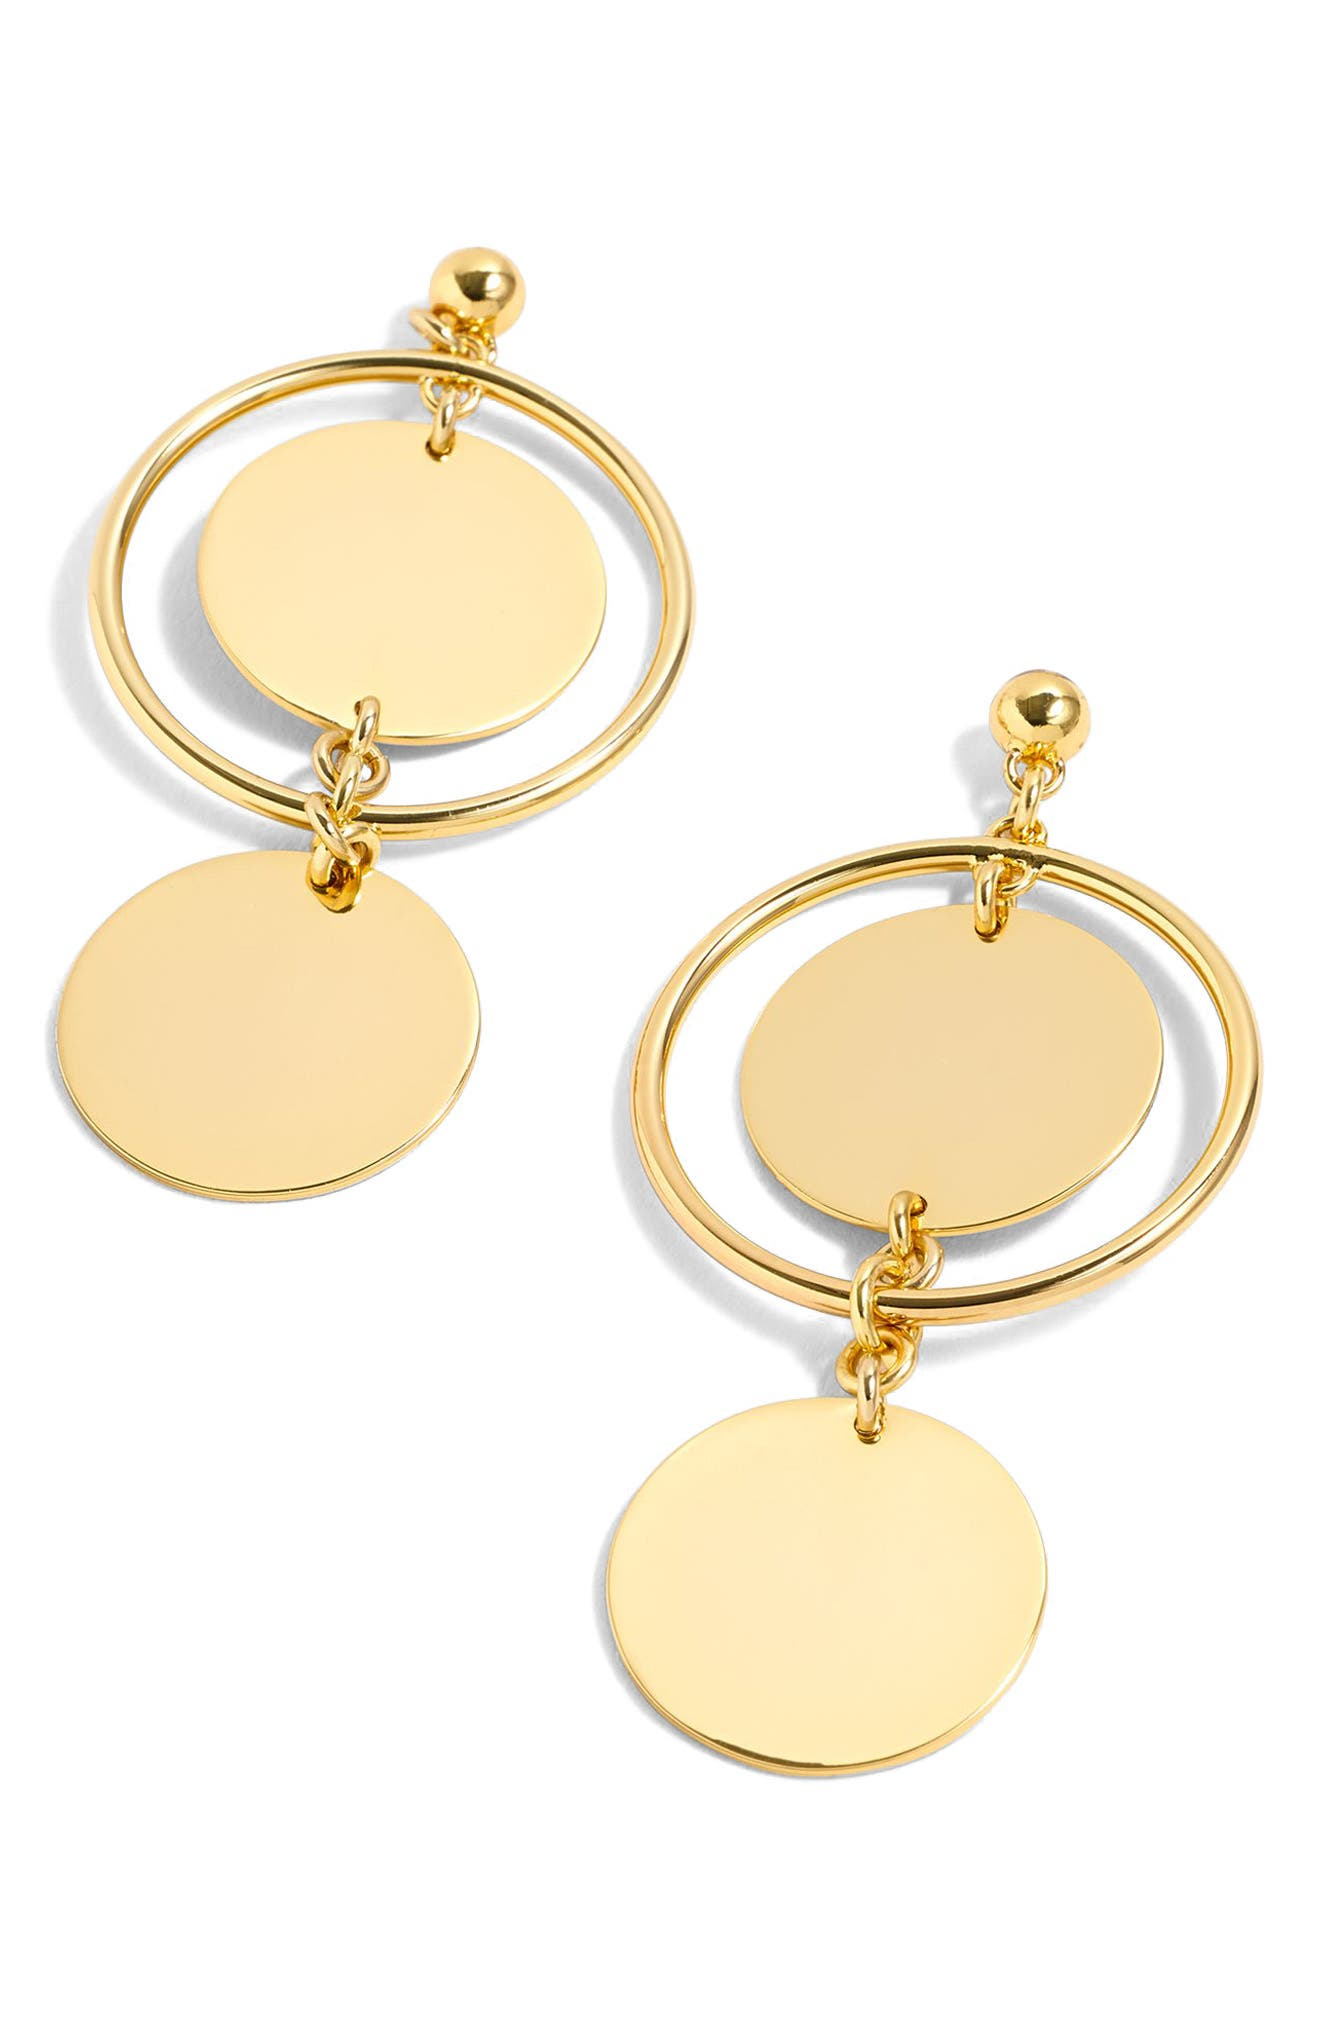 J.Crew Double Disc Drop Earrings,                             Main thumbnail 1, color,                             Gold